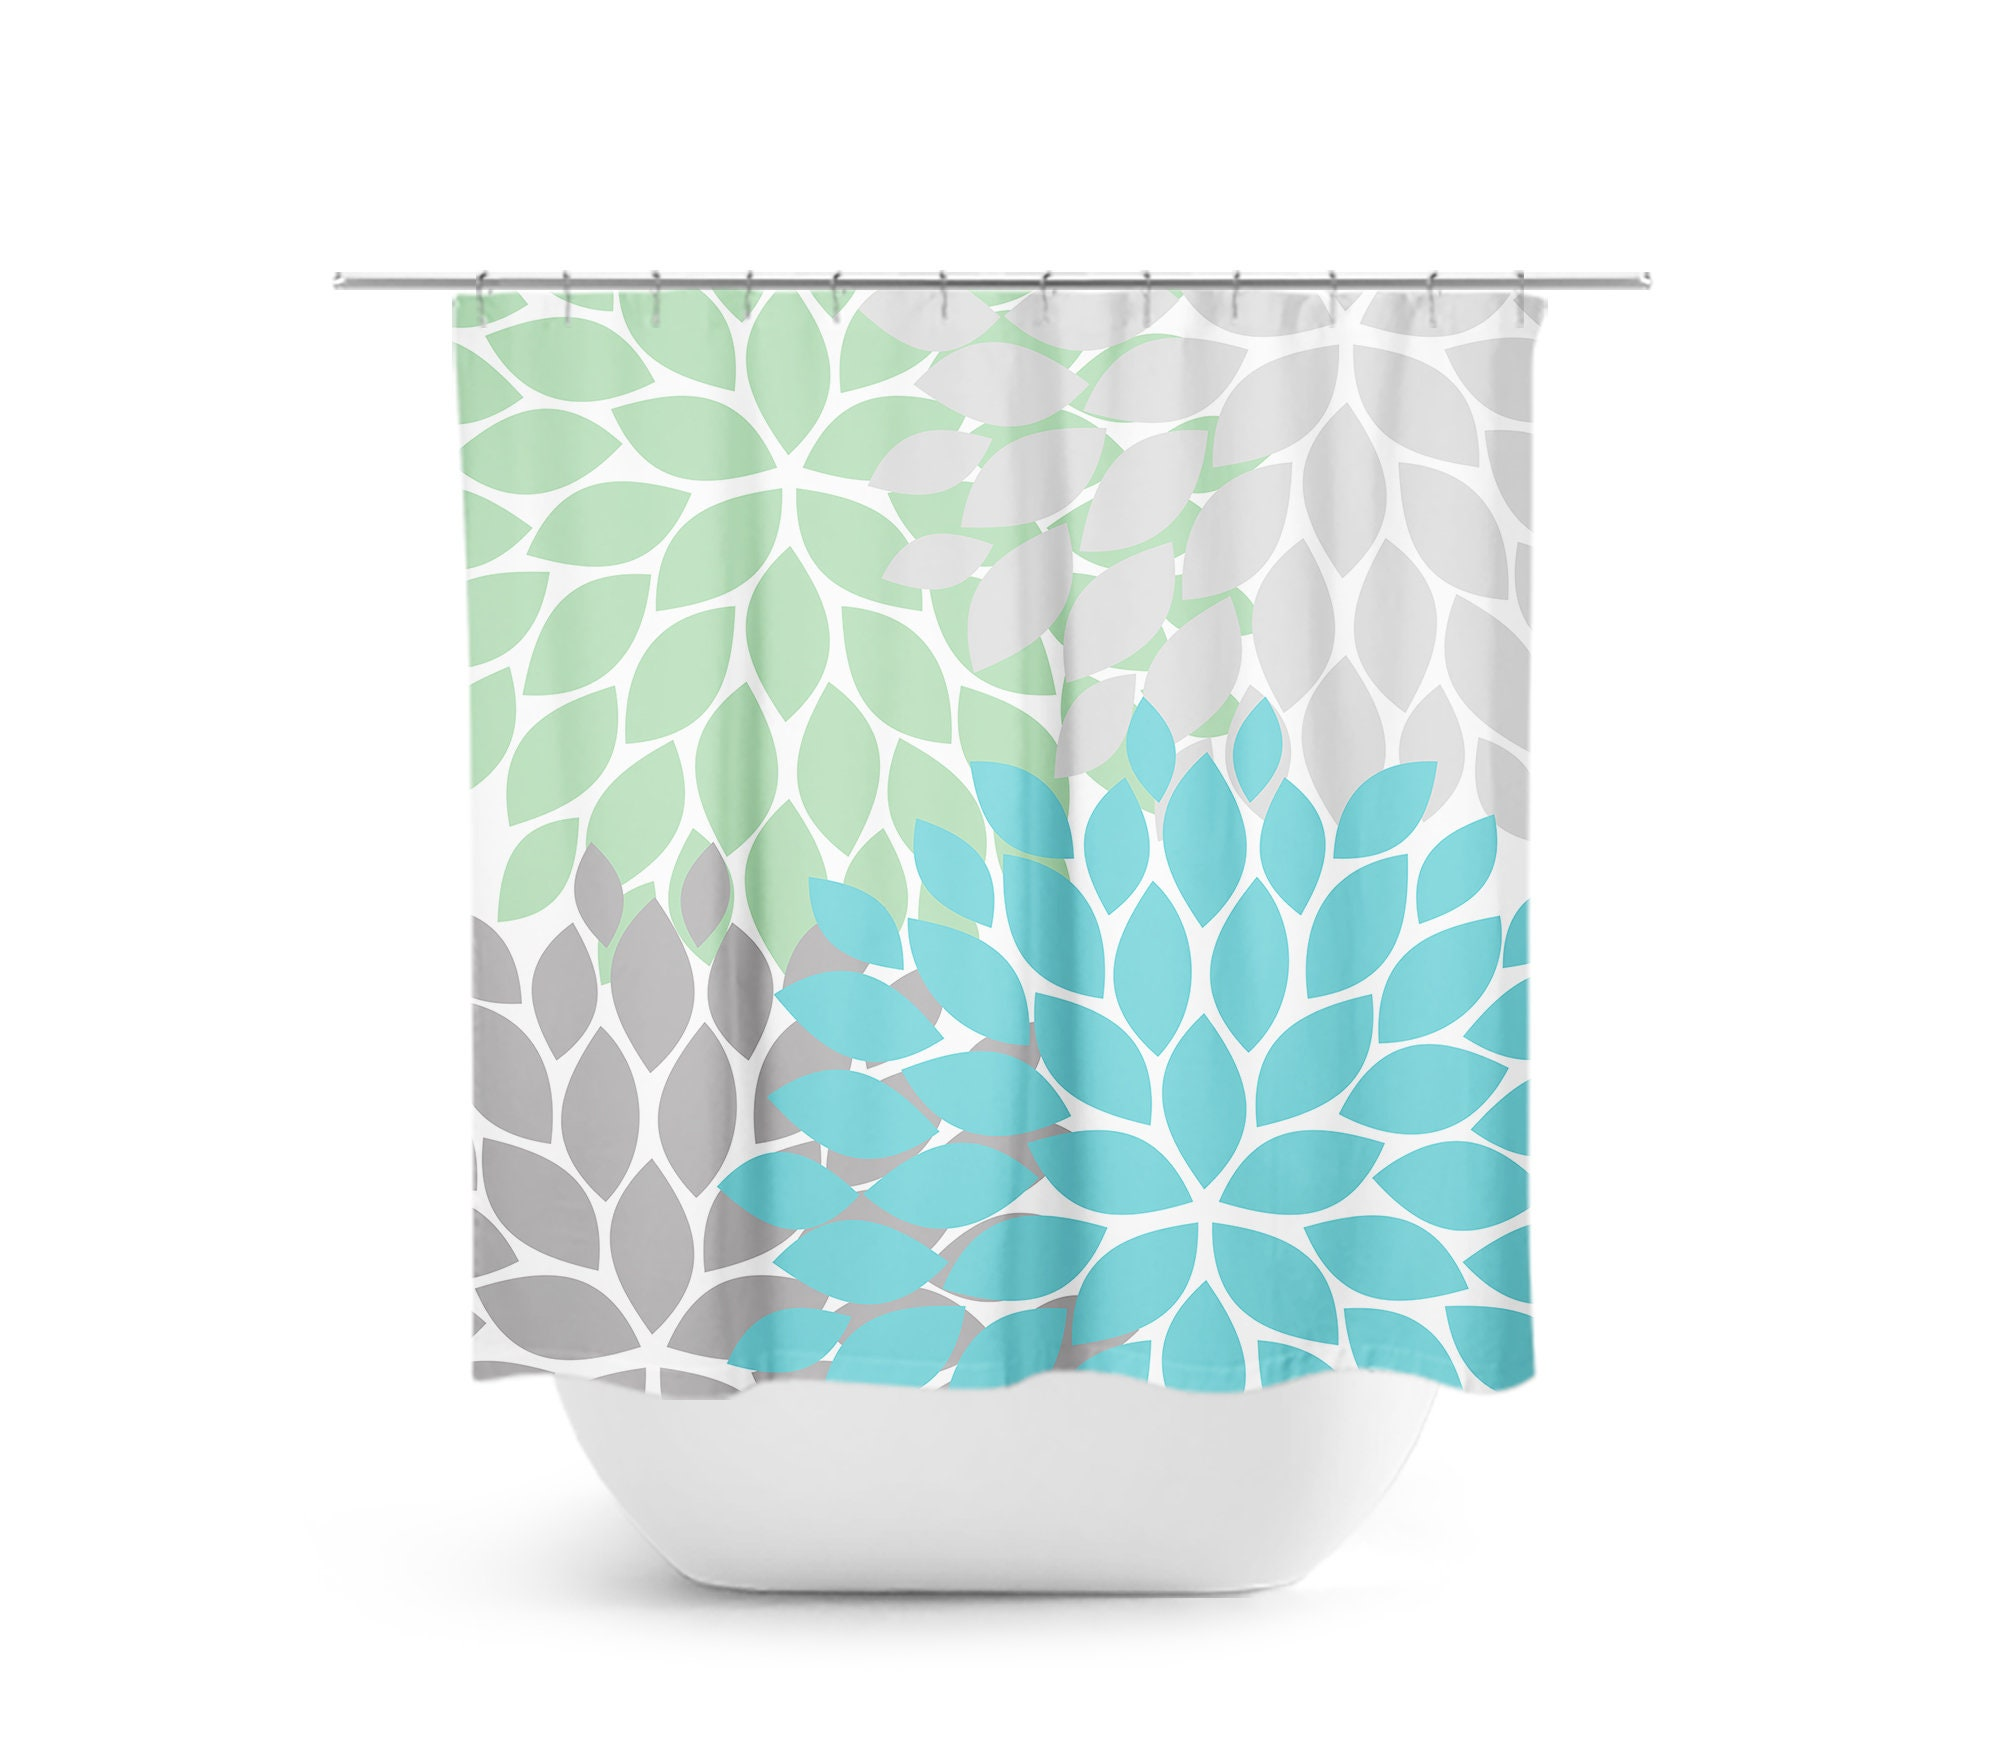 Sea Glass Shower Curtain Green Blue Gray Bathroom Decor Flower Bath Floral Guest